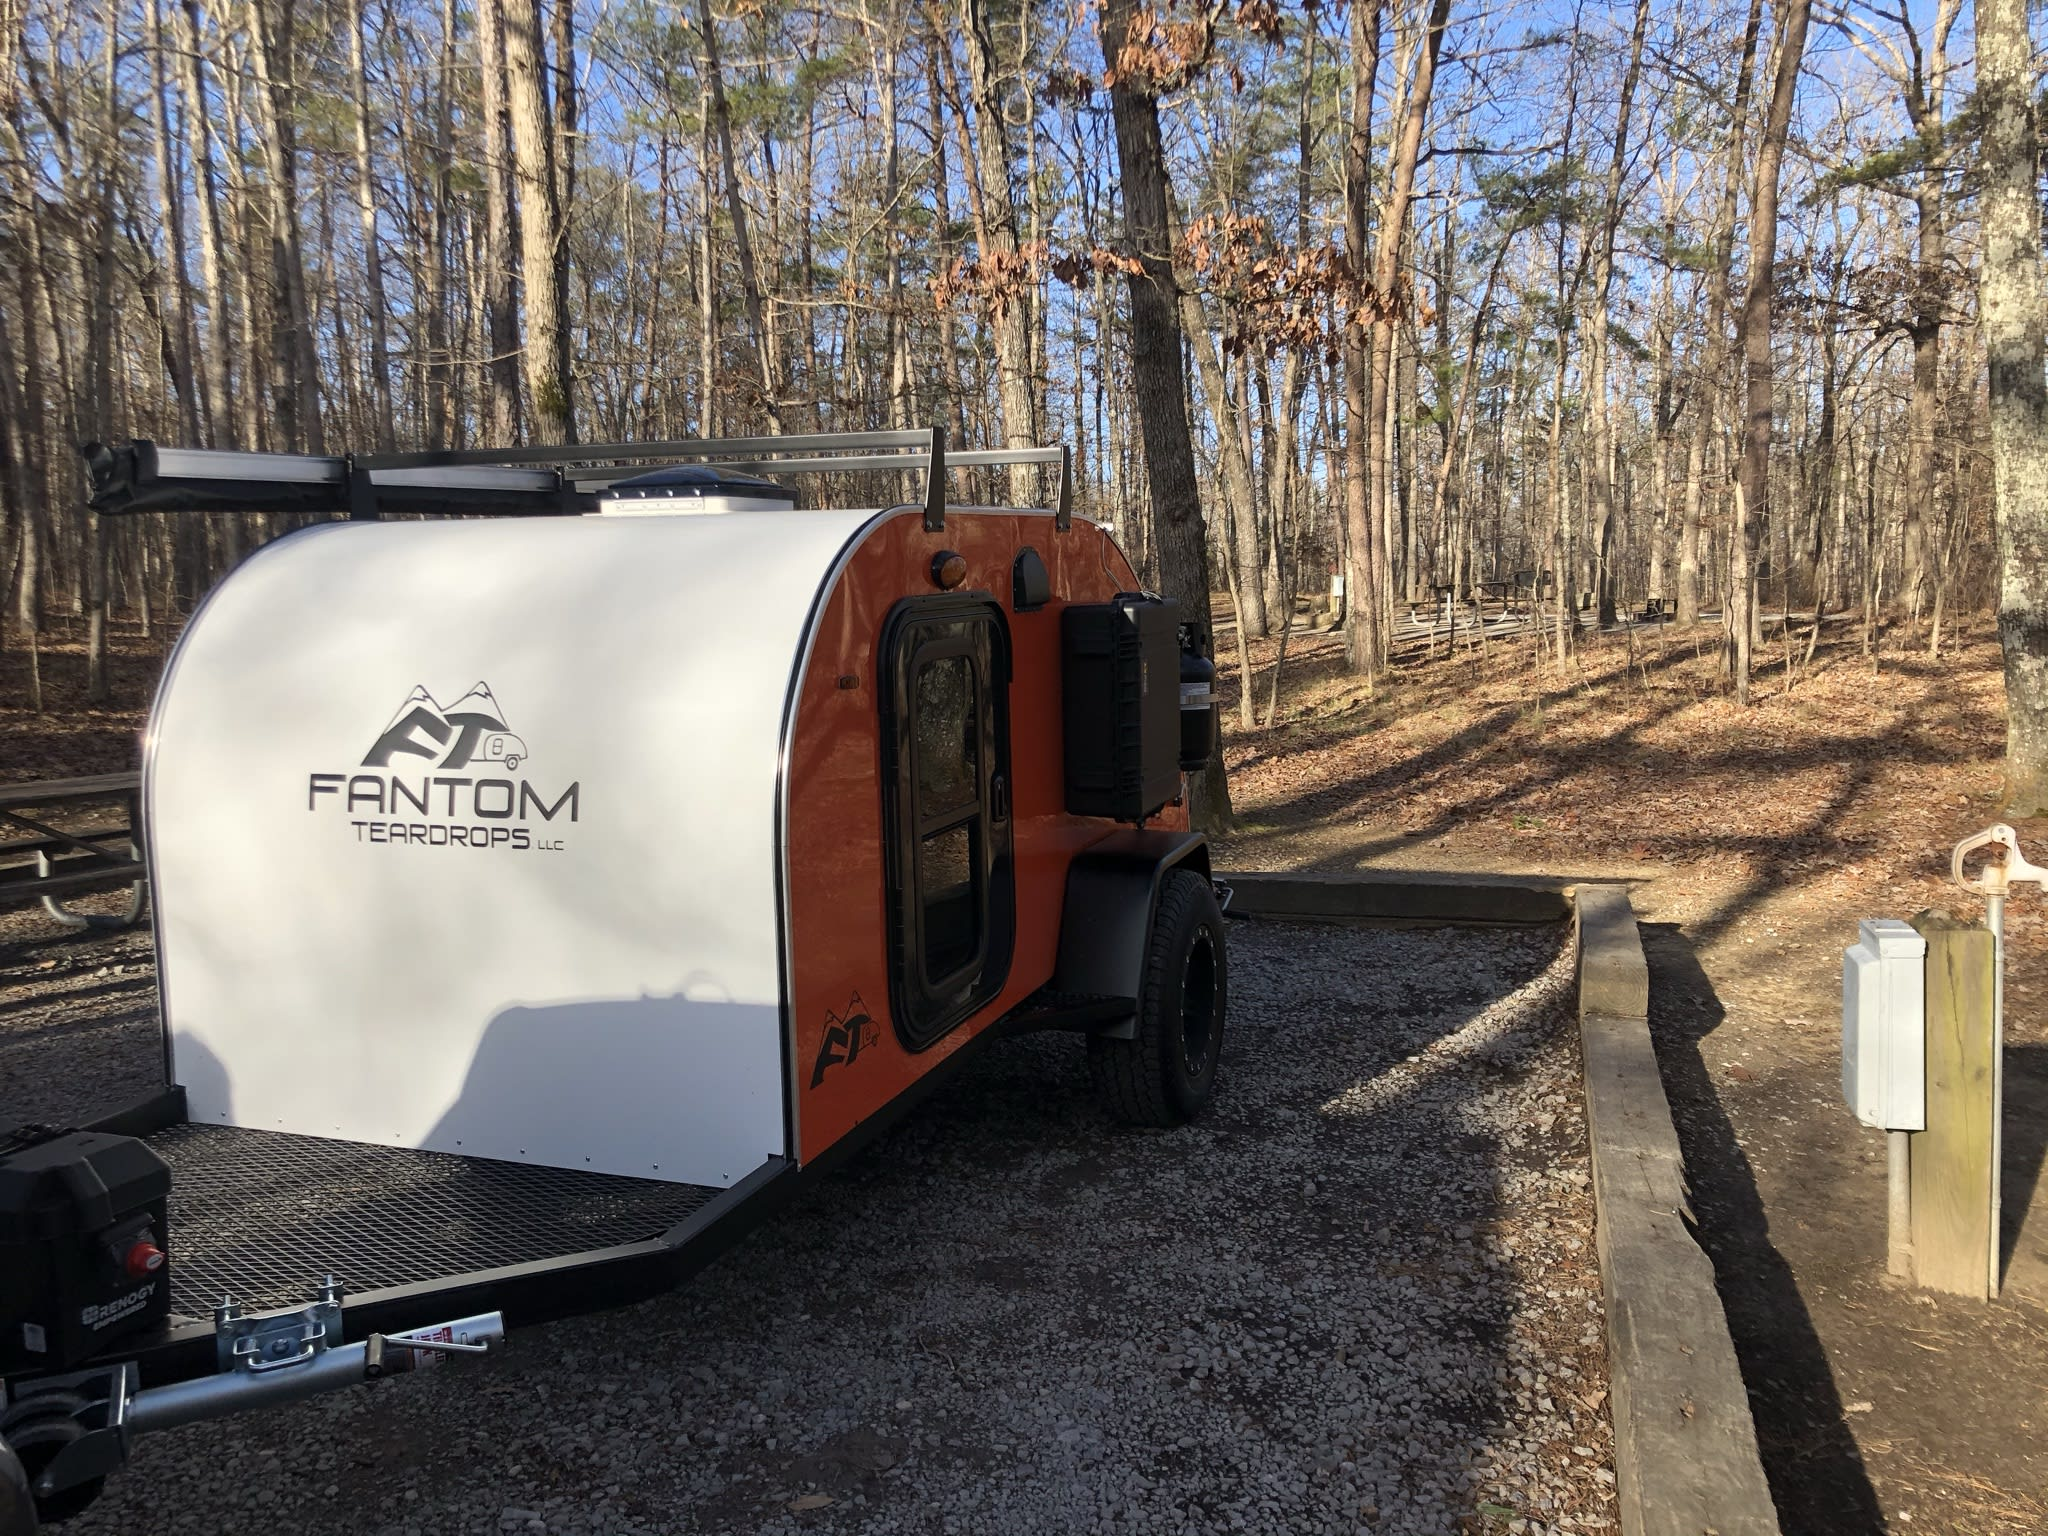 The front tongue of the trailer has space for extra storage while in camp, which helps keep your gear or firewood off the damp ground. Other Other 2021